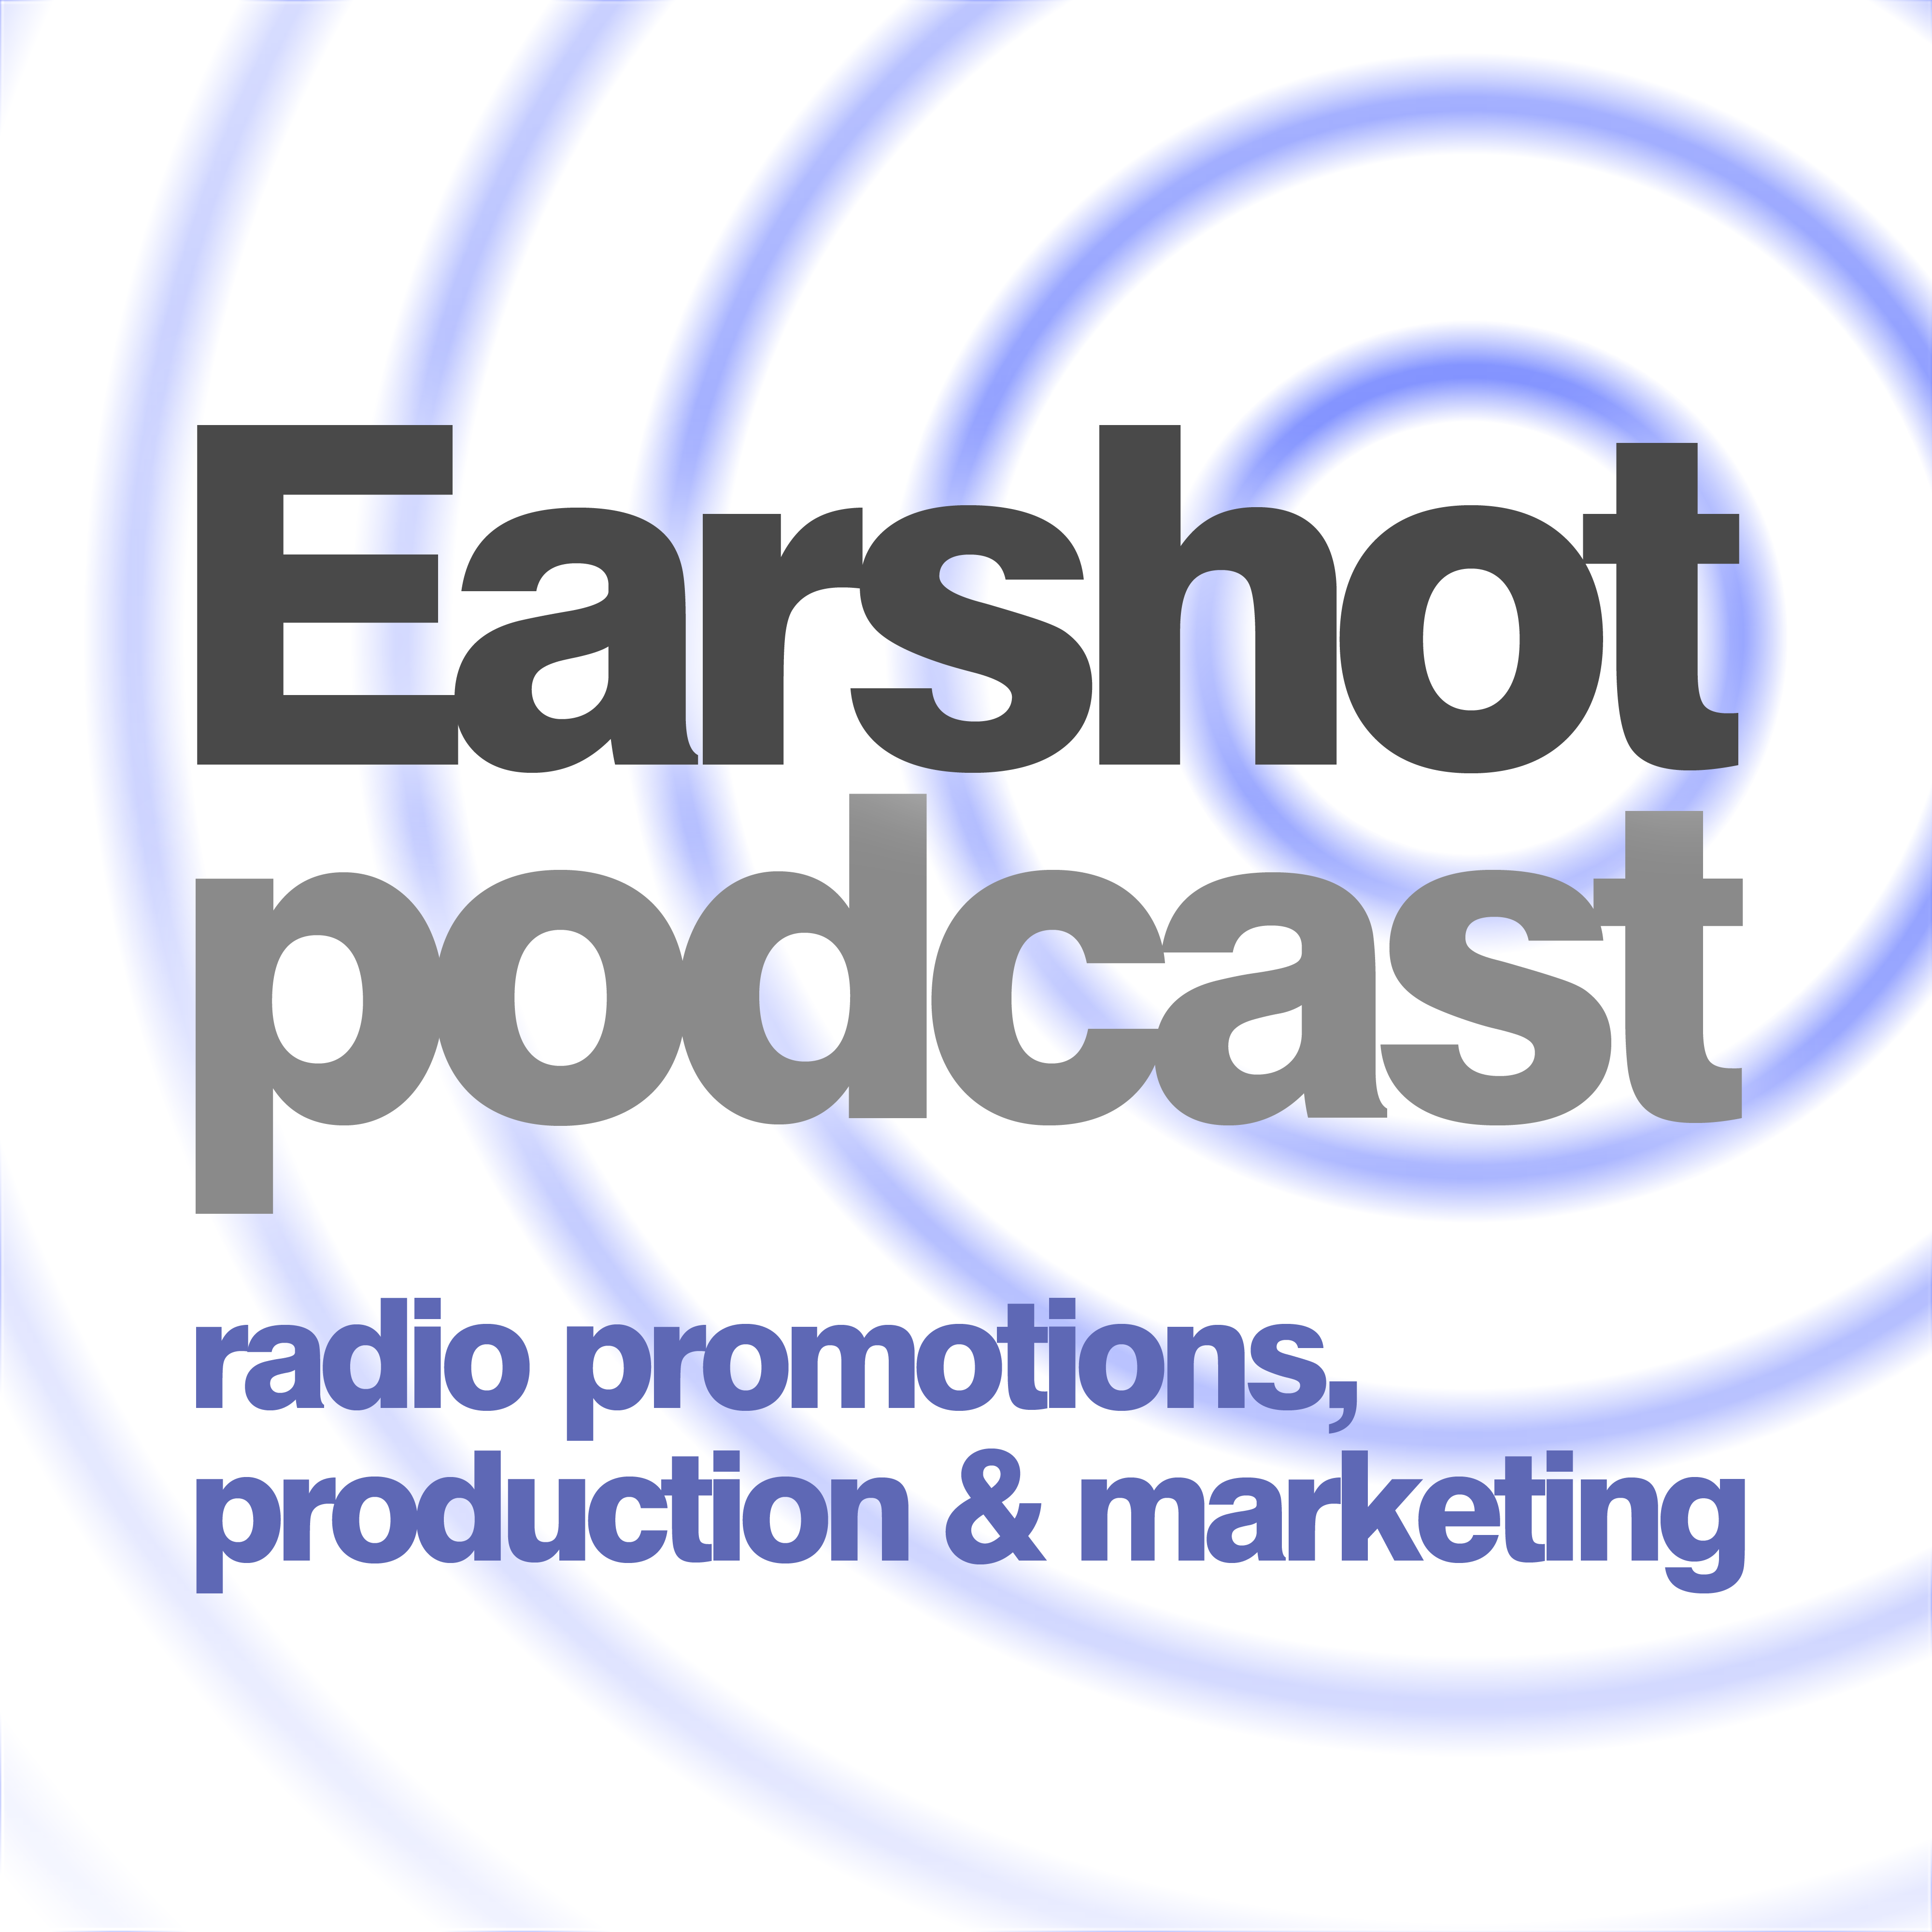 Earshot - the radio promotions podcast